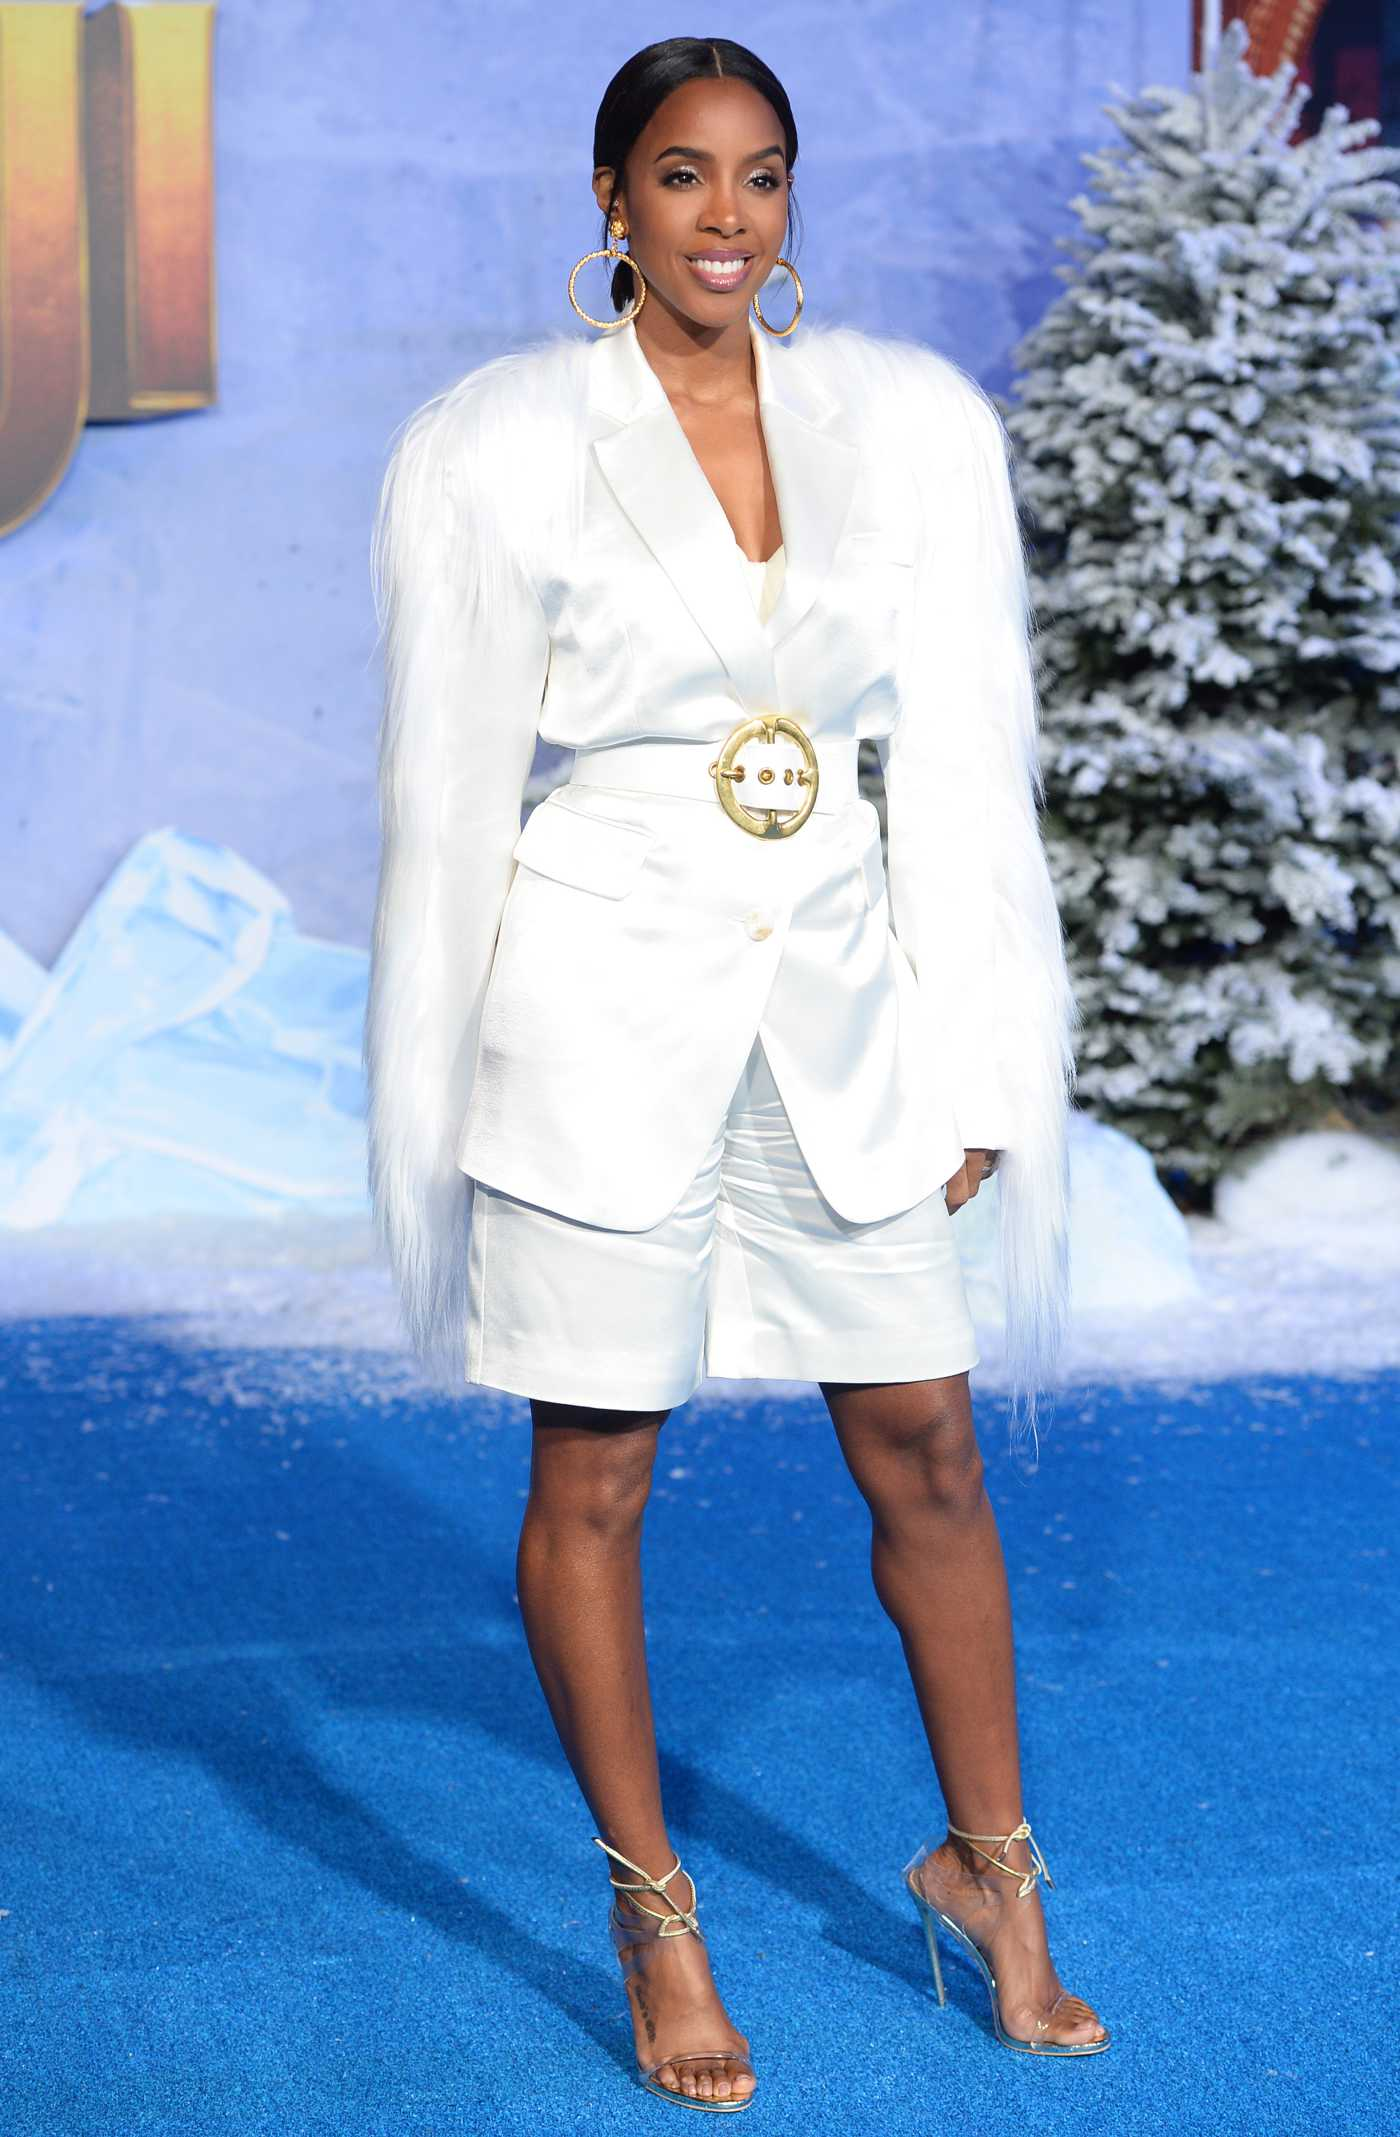 Kelly Rowland Attends Jumanji: The Next Level Premiere at TCL Chinese Theatre in Hollywood 12/09/2019